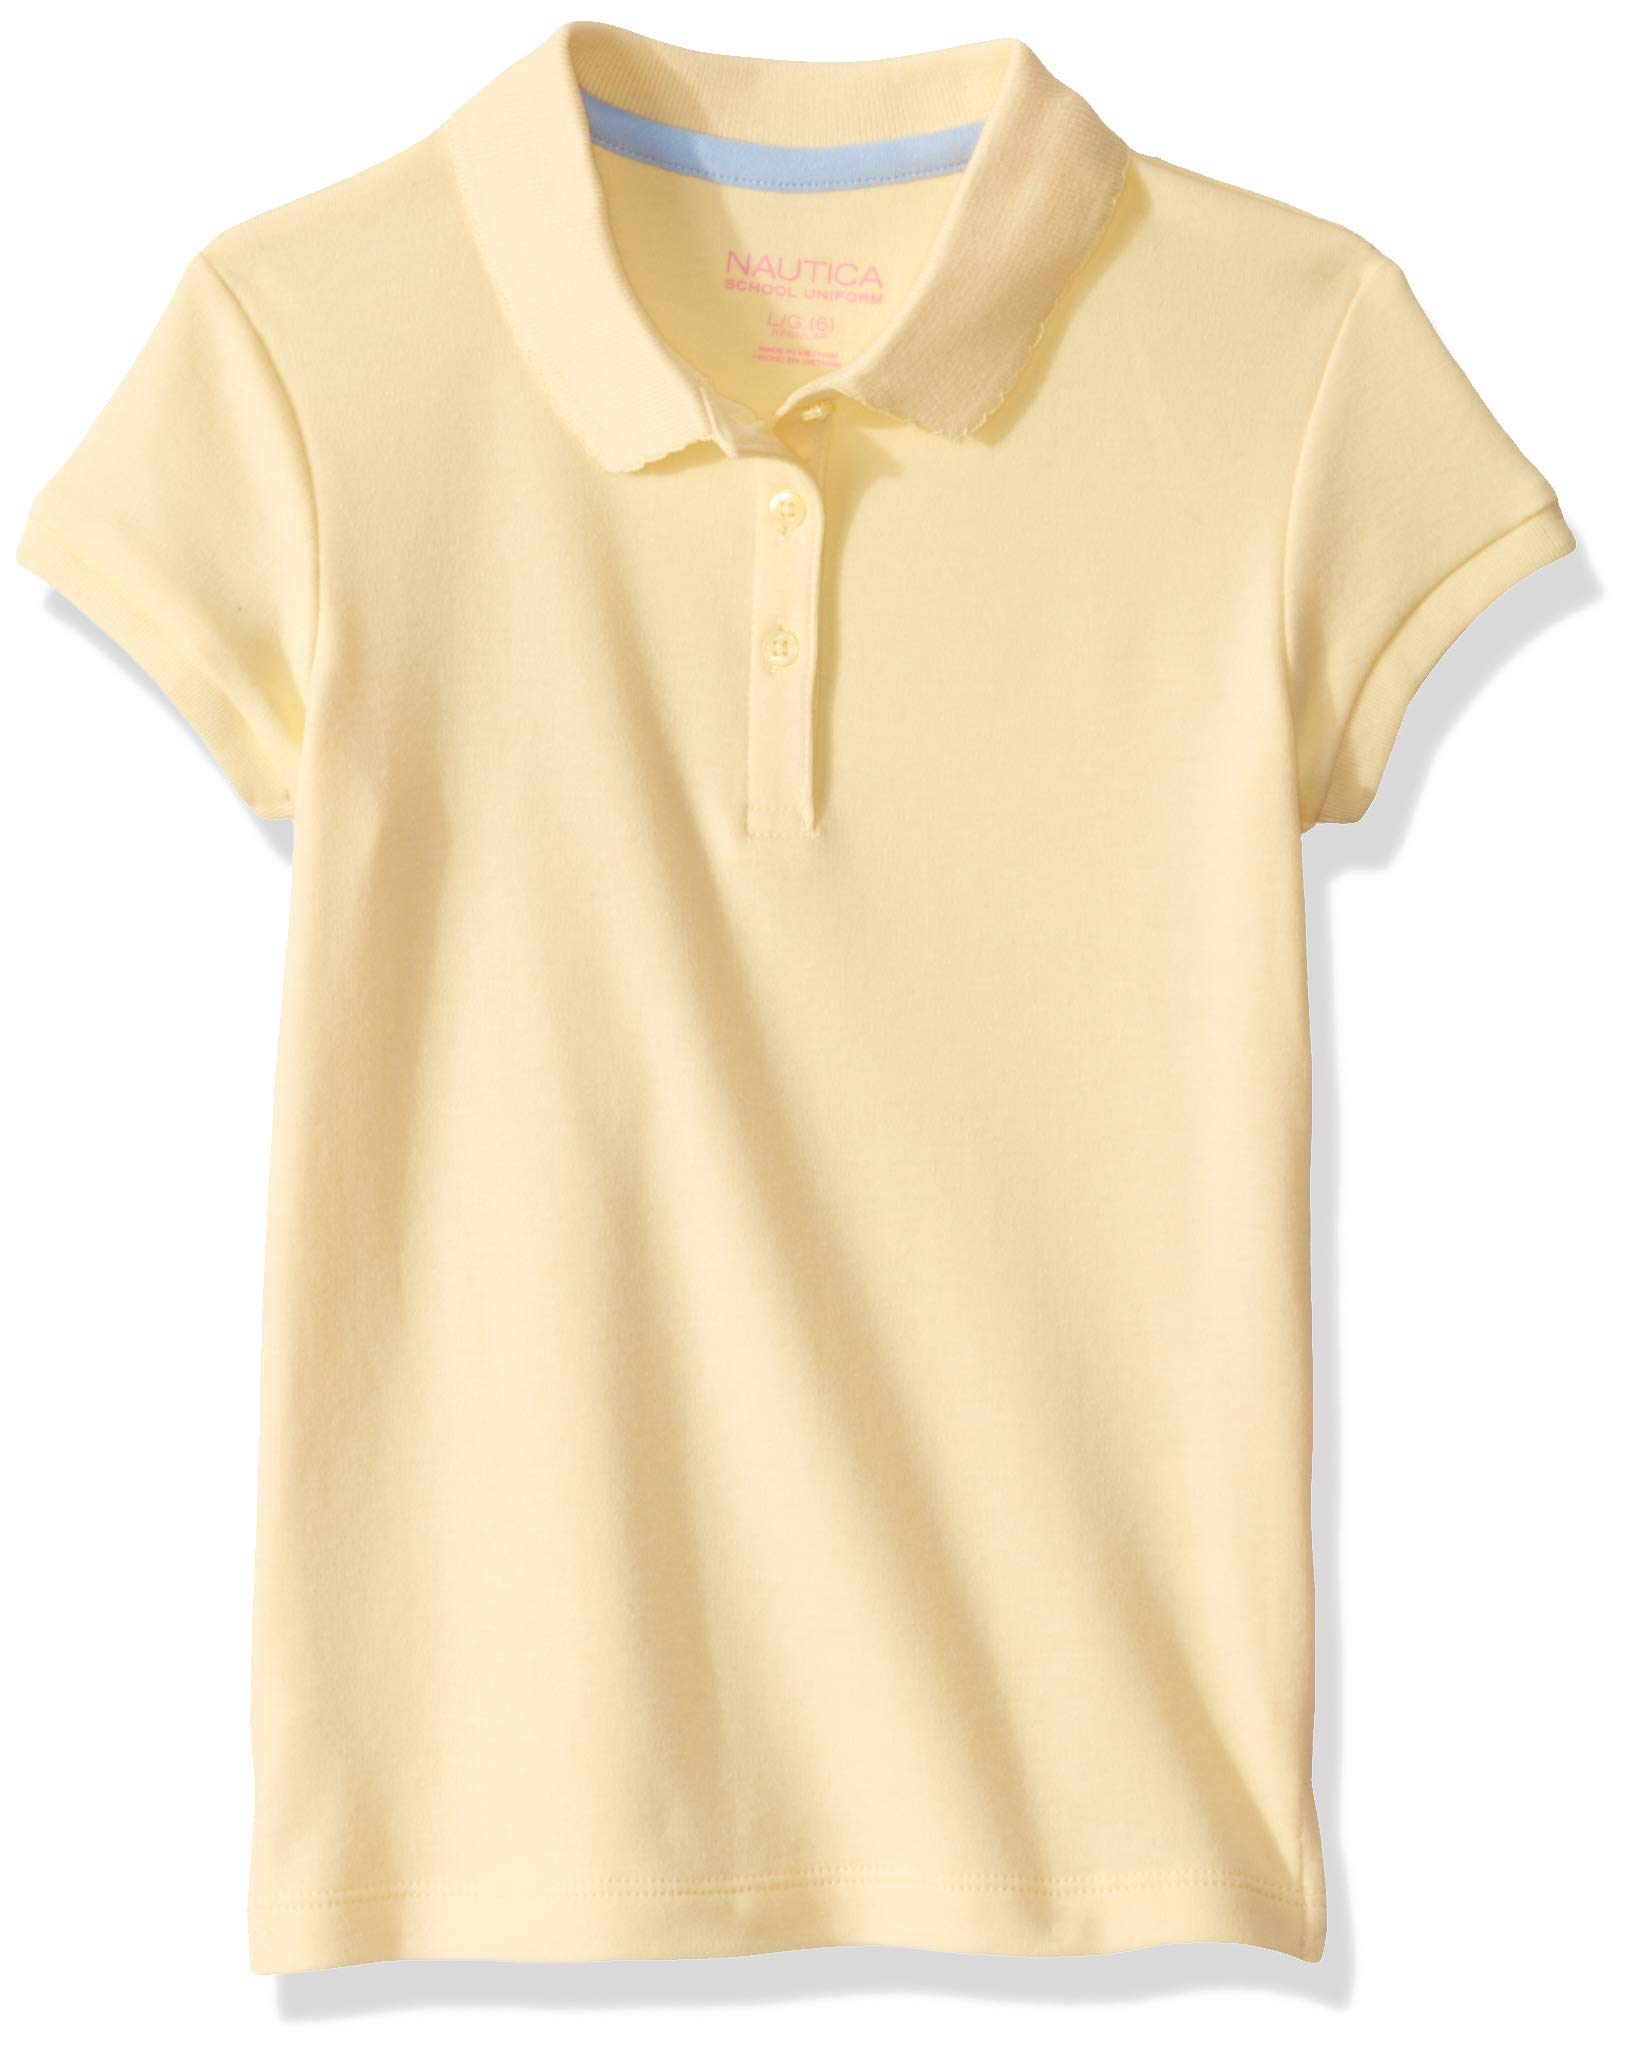 Nautica Girls' School Uniform Short Sleeve Pique Polo